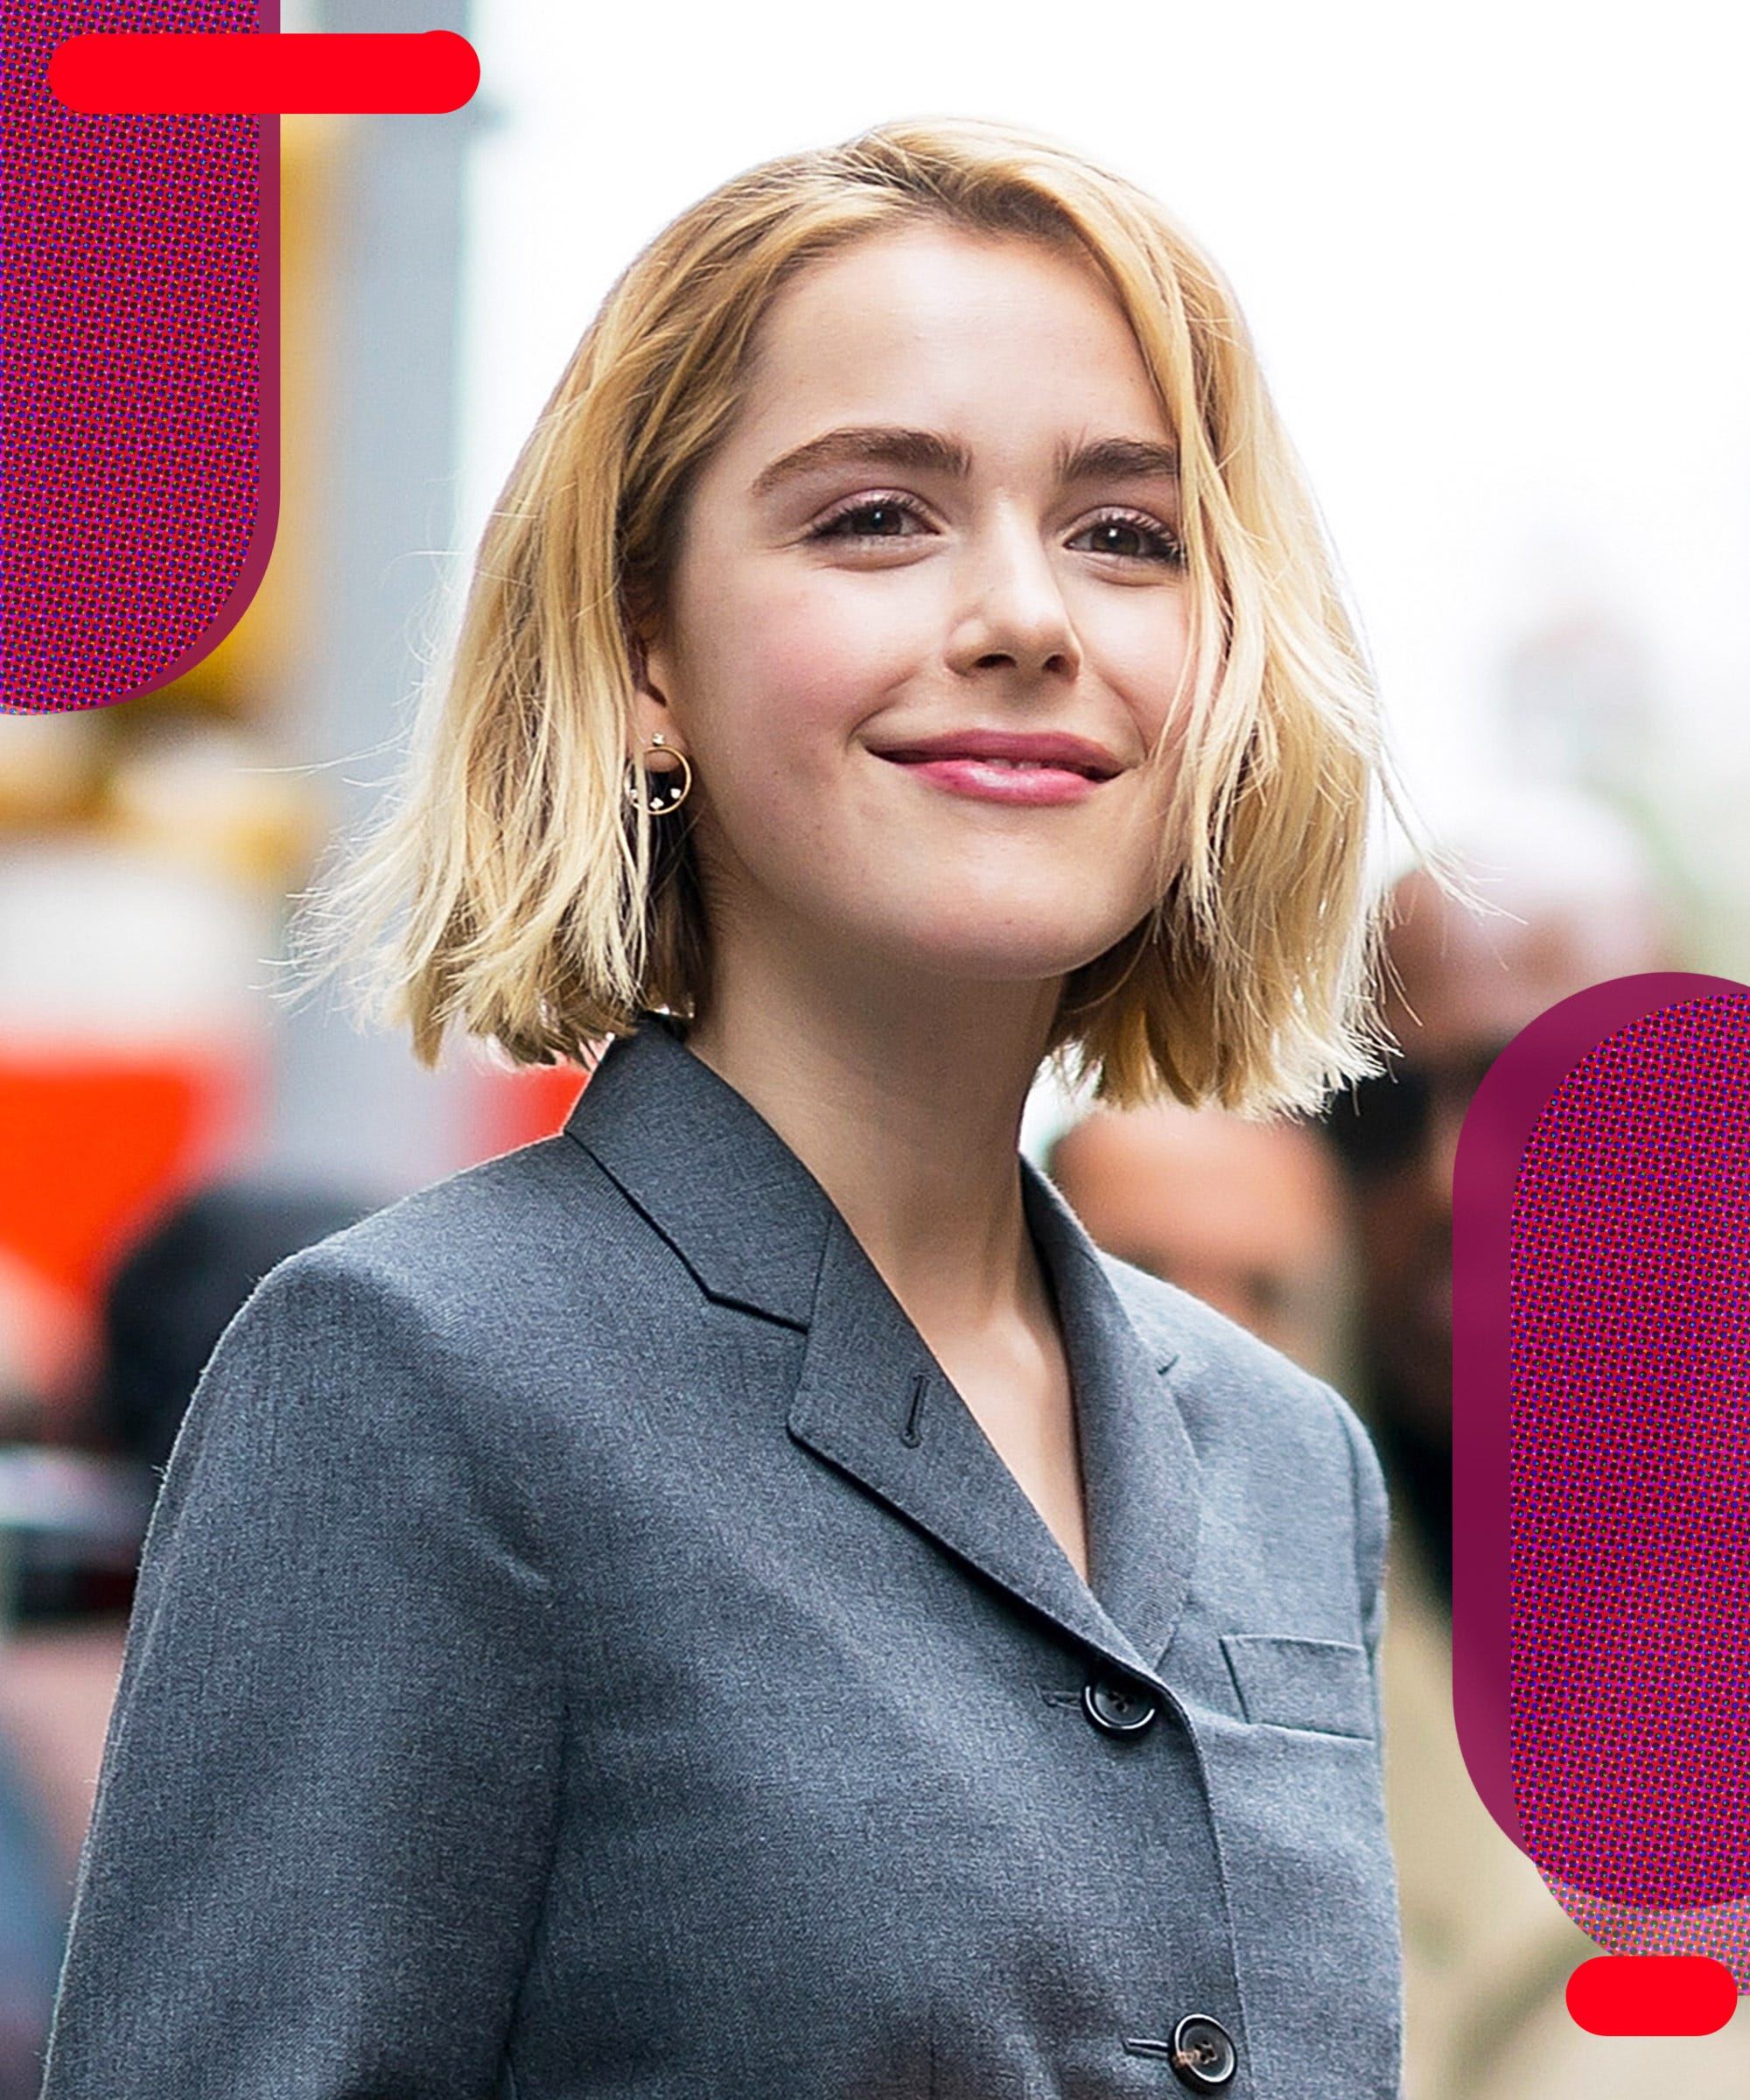 A Line Bob Haircut Looks For Chic Hairstyles In 2019